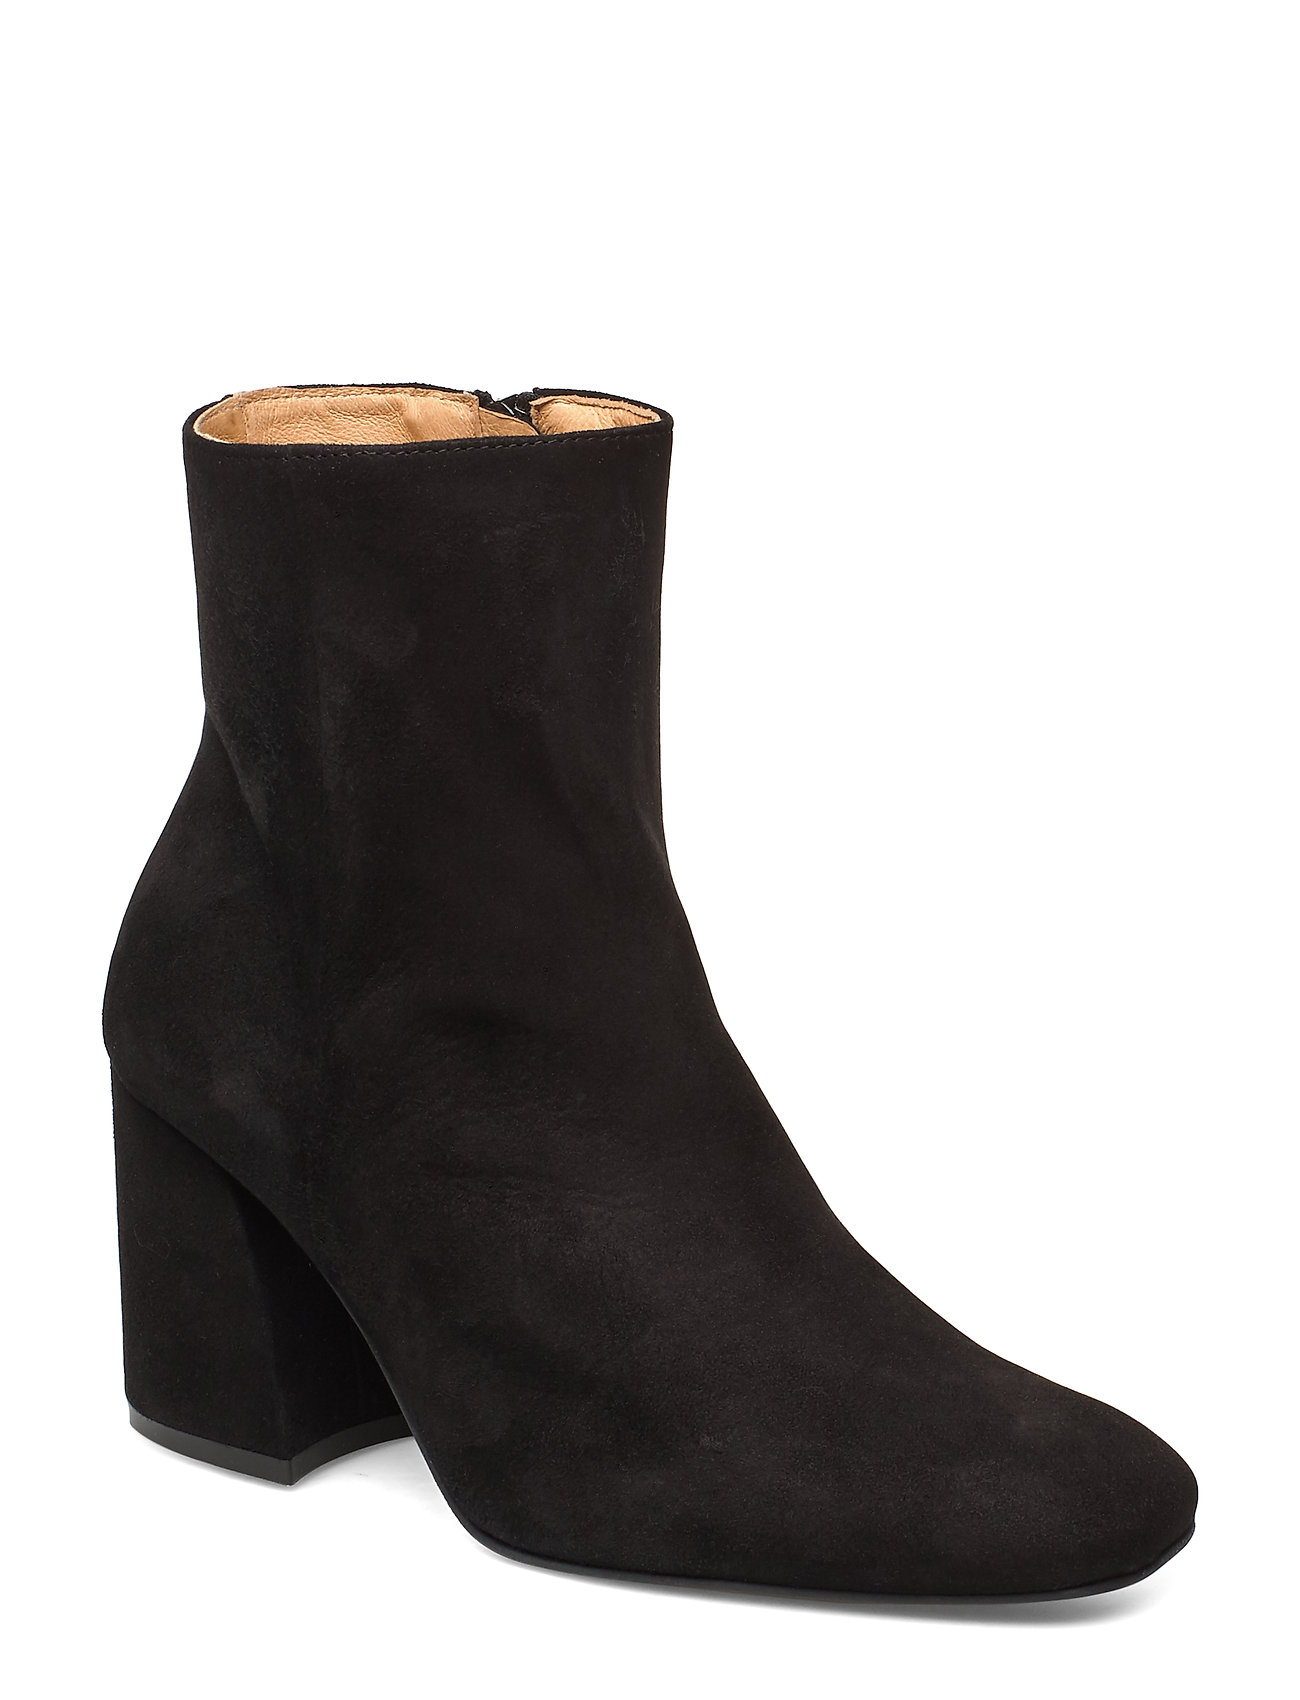 Image of Ms Steinem Shoes Boots Ankle Boots Ankle Boot - Heel Sort ANNY NORD (3406245563)